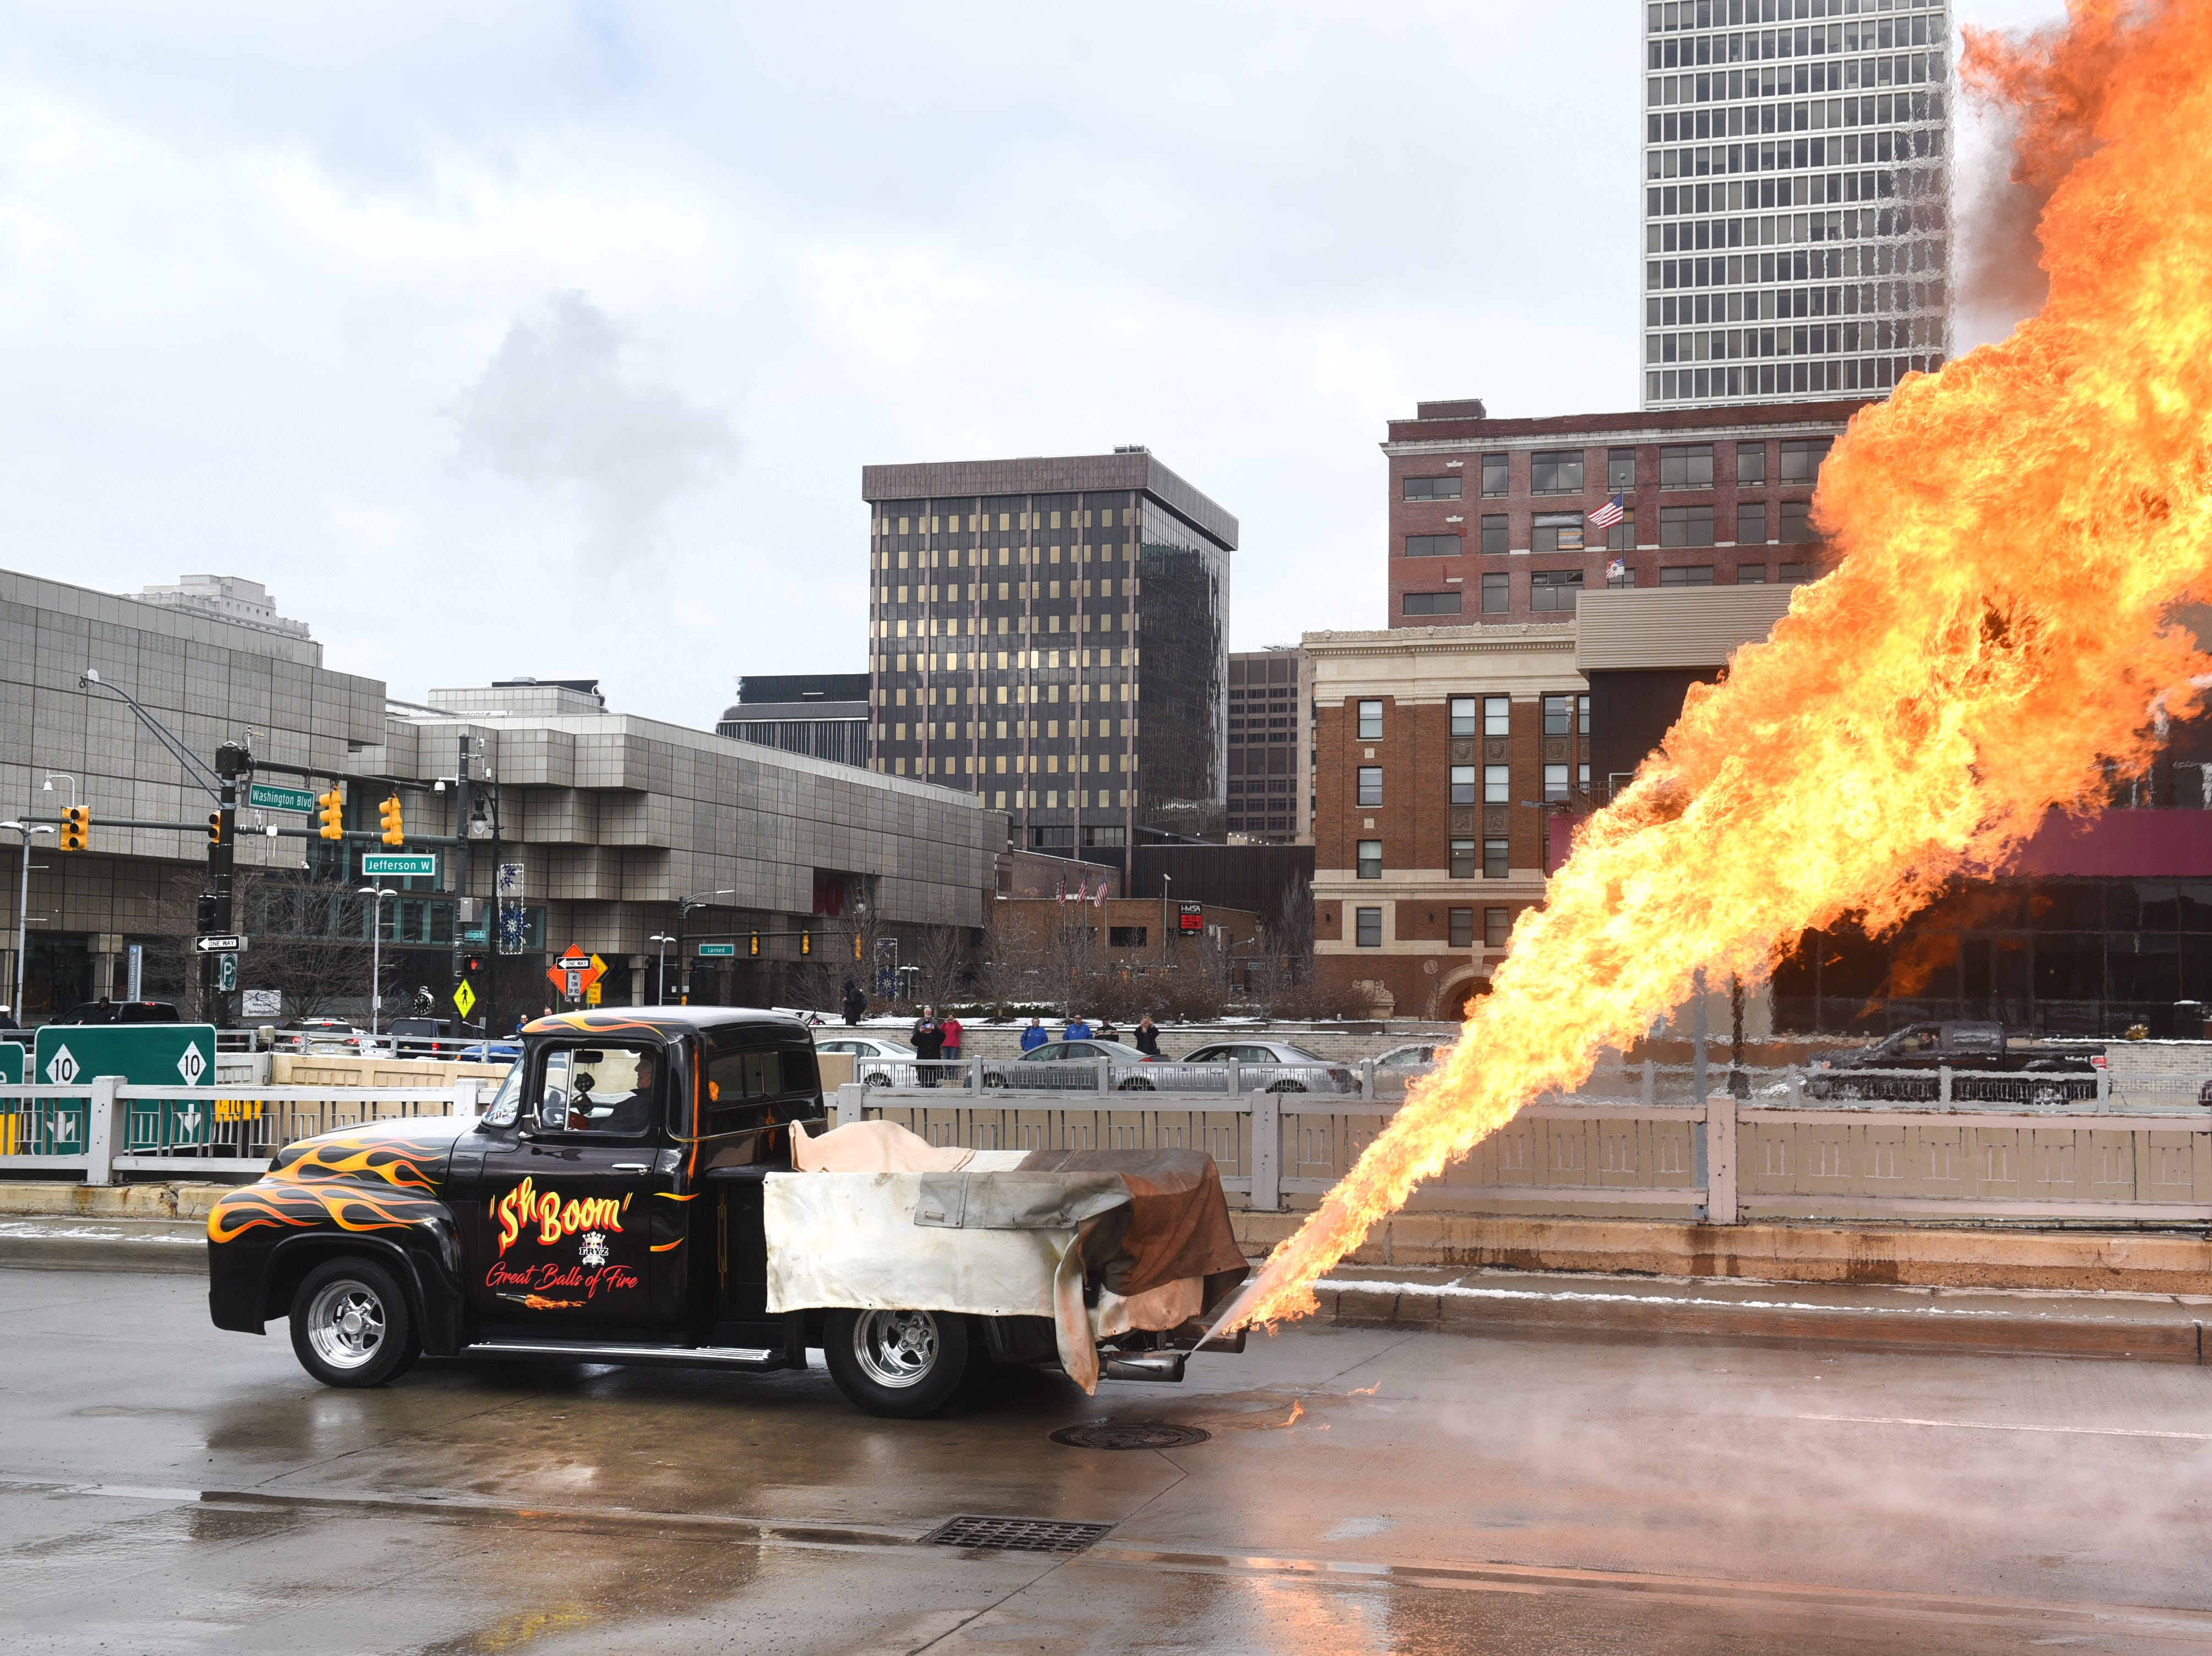 Flames shoot out from the famous Sh'Boom truck for the opening of the Autorama custom car show at Cobo Center in Detroit on Friday May 2, 2018.